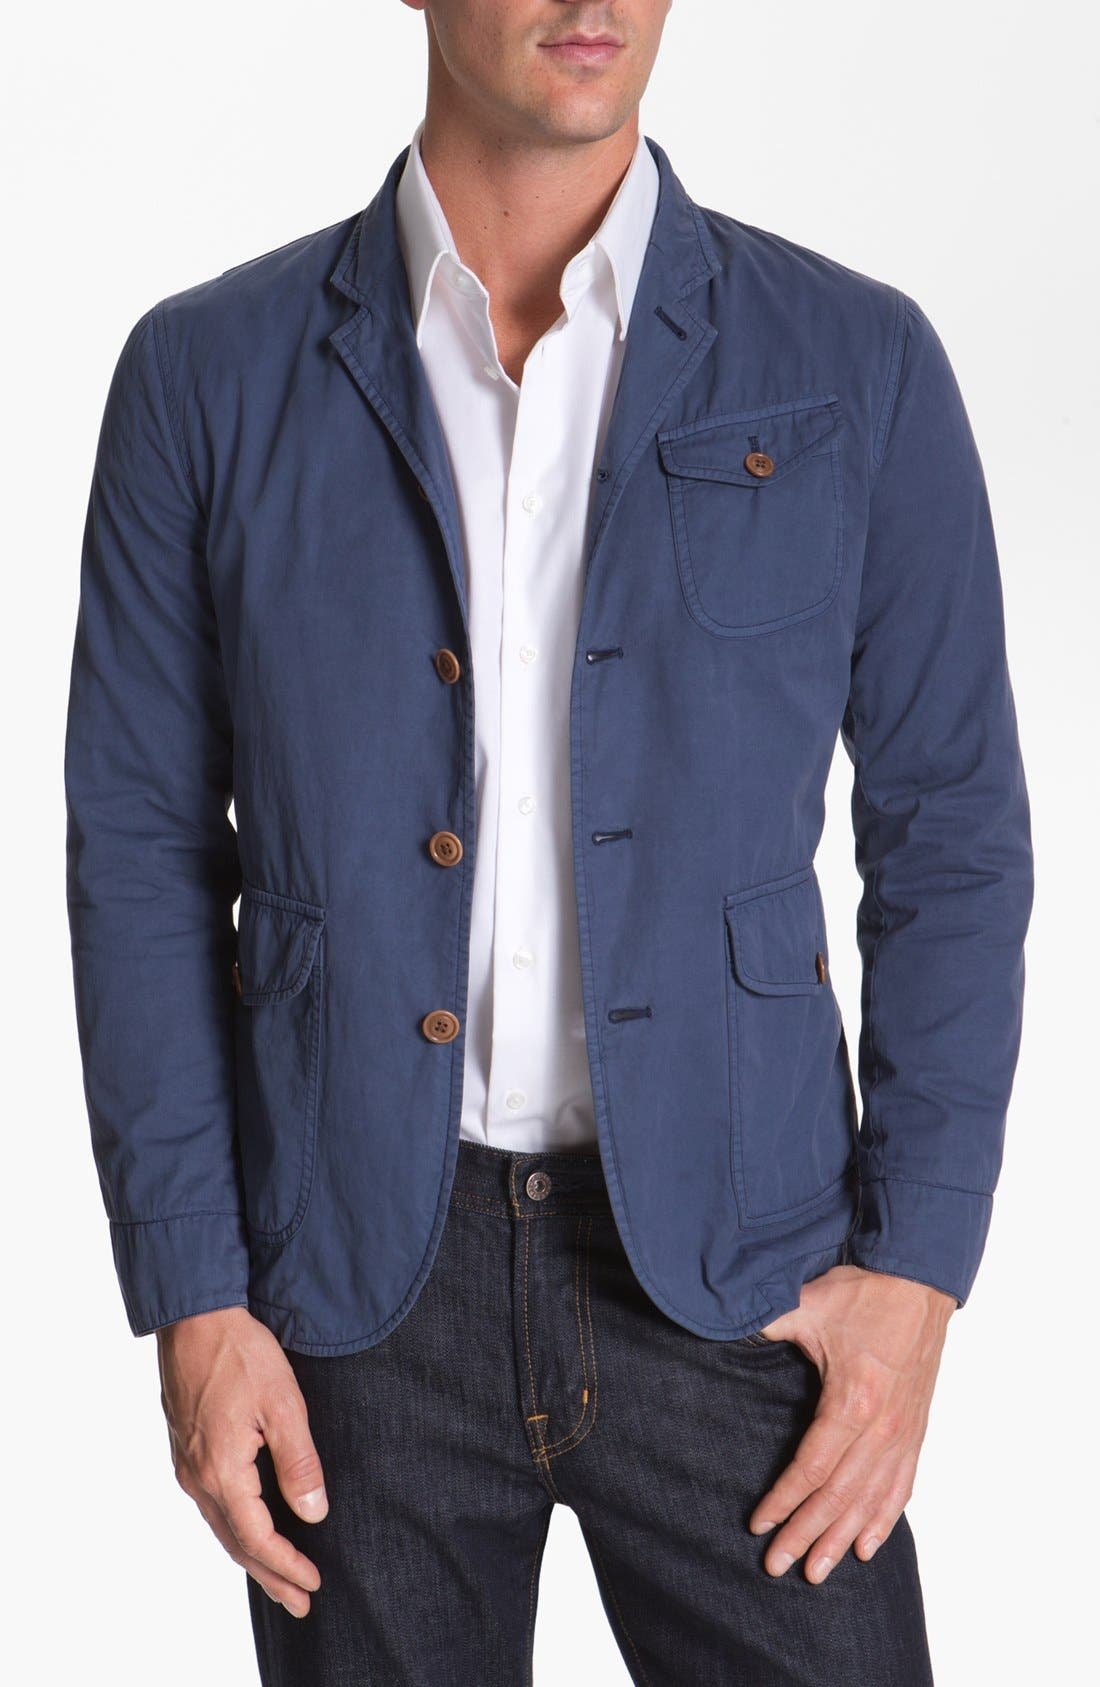 Alternate Image 1 Selected - Façonnable Tailored Denim Three Button Jacket